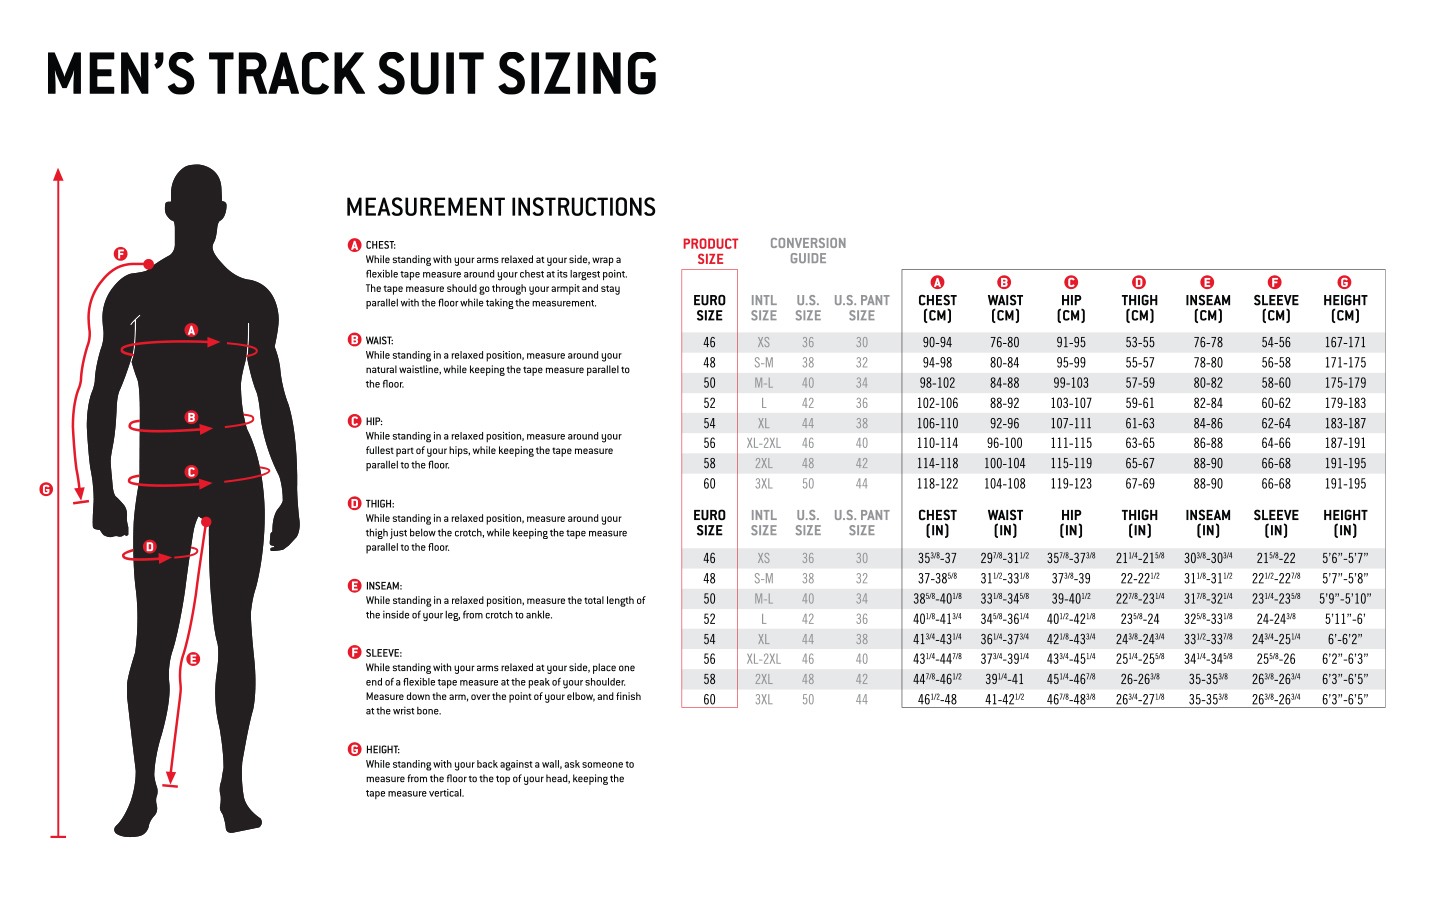 Instructions sizing charts and suit fit details can be found below the type of every icon in first bullet point copy also motosports ride among us rh rideicon